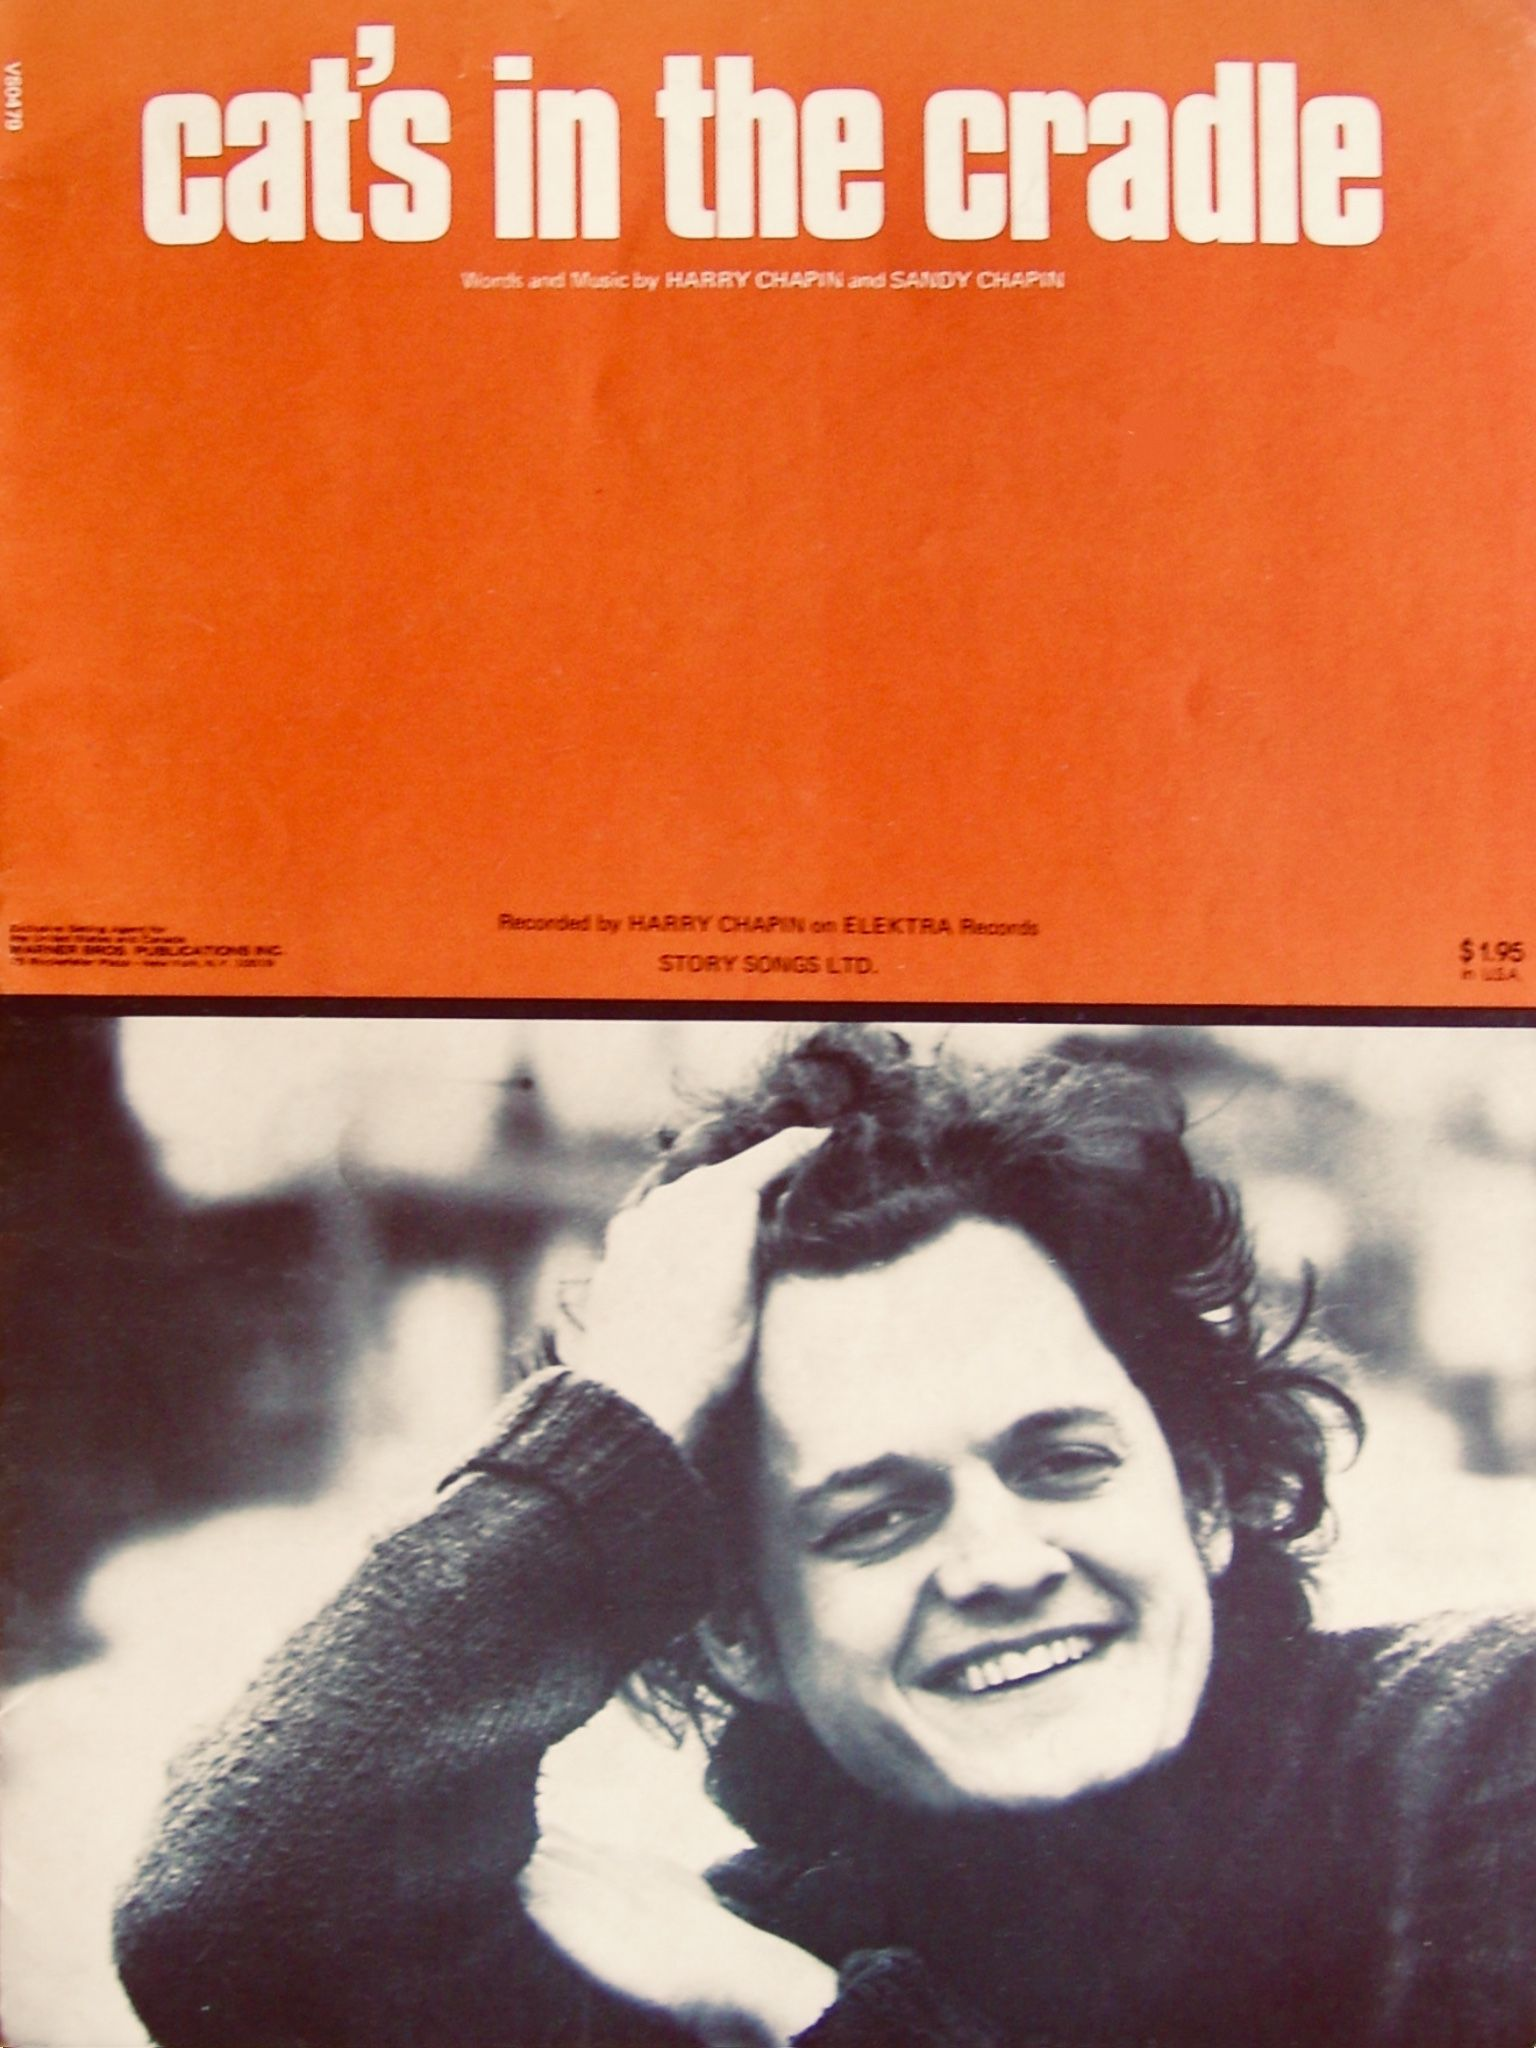 Pin By Harris On Harry Chapin Chapin Cats Cradle Movie Posters